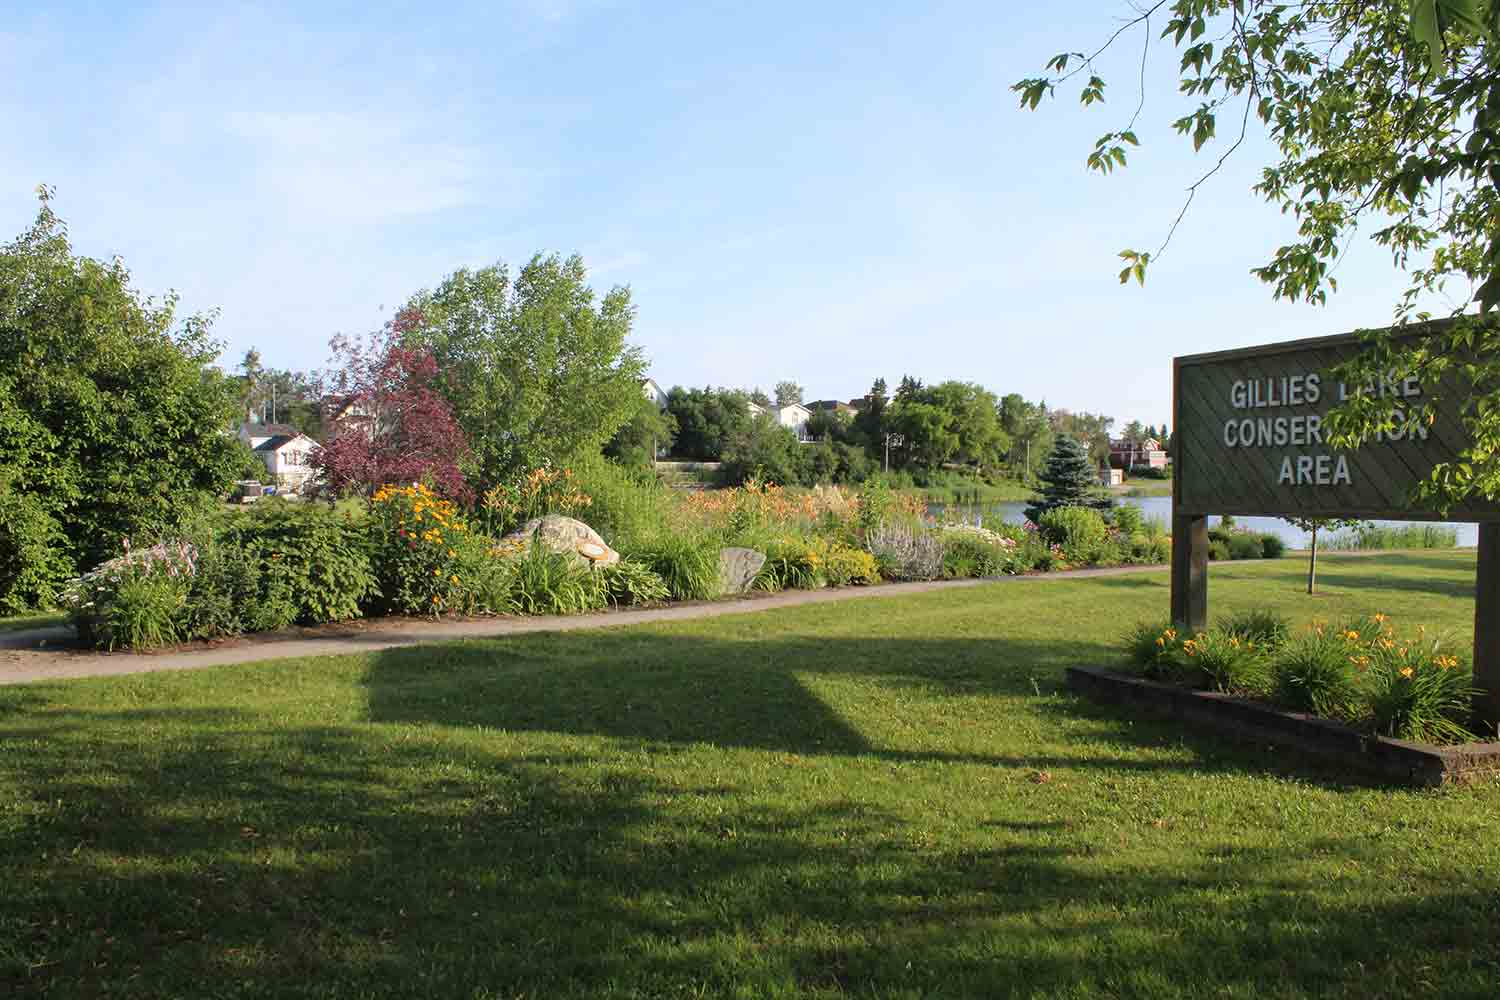 Gardens in bloom at Gillies Lake Conservation Area